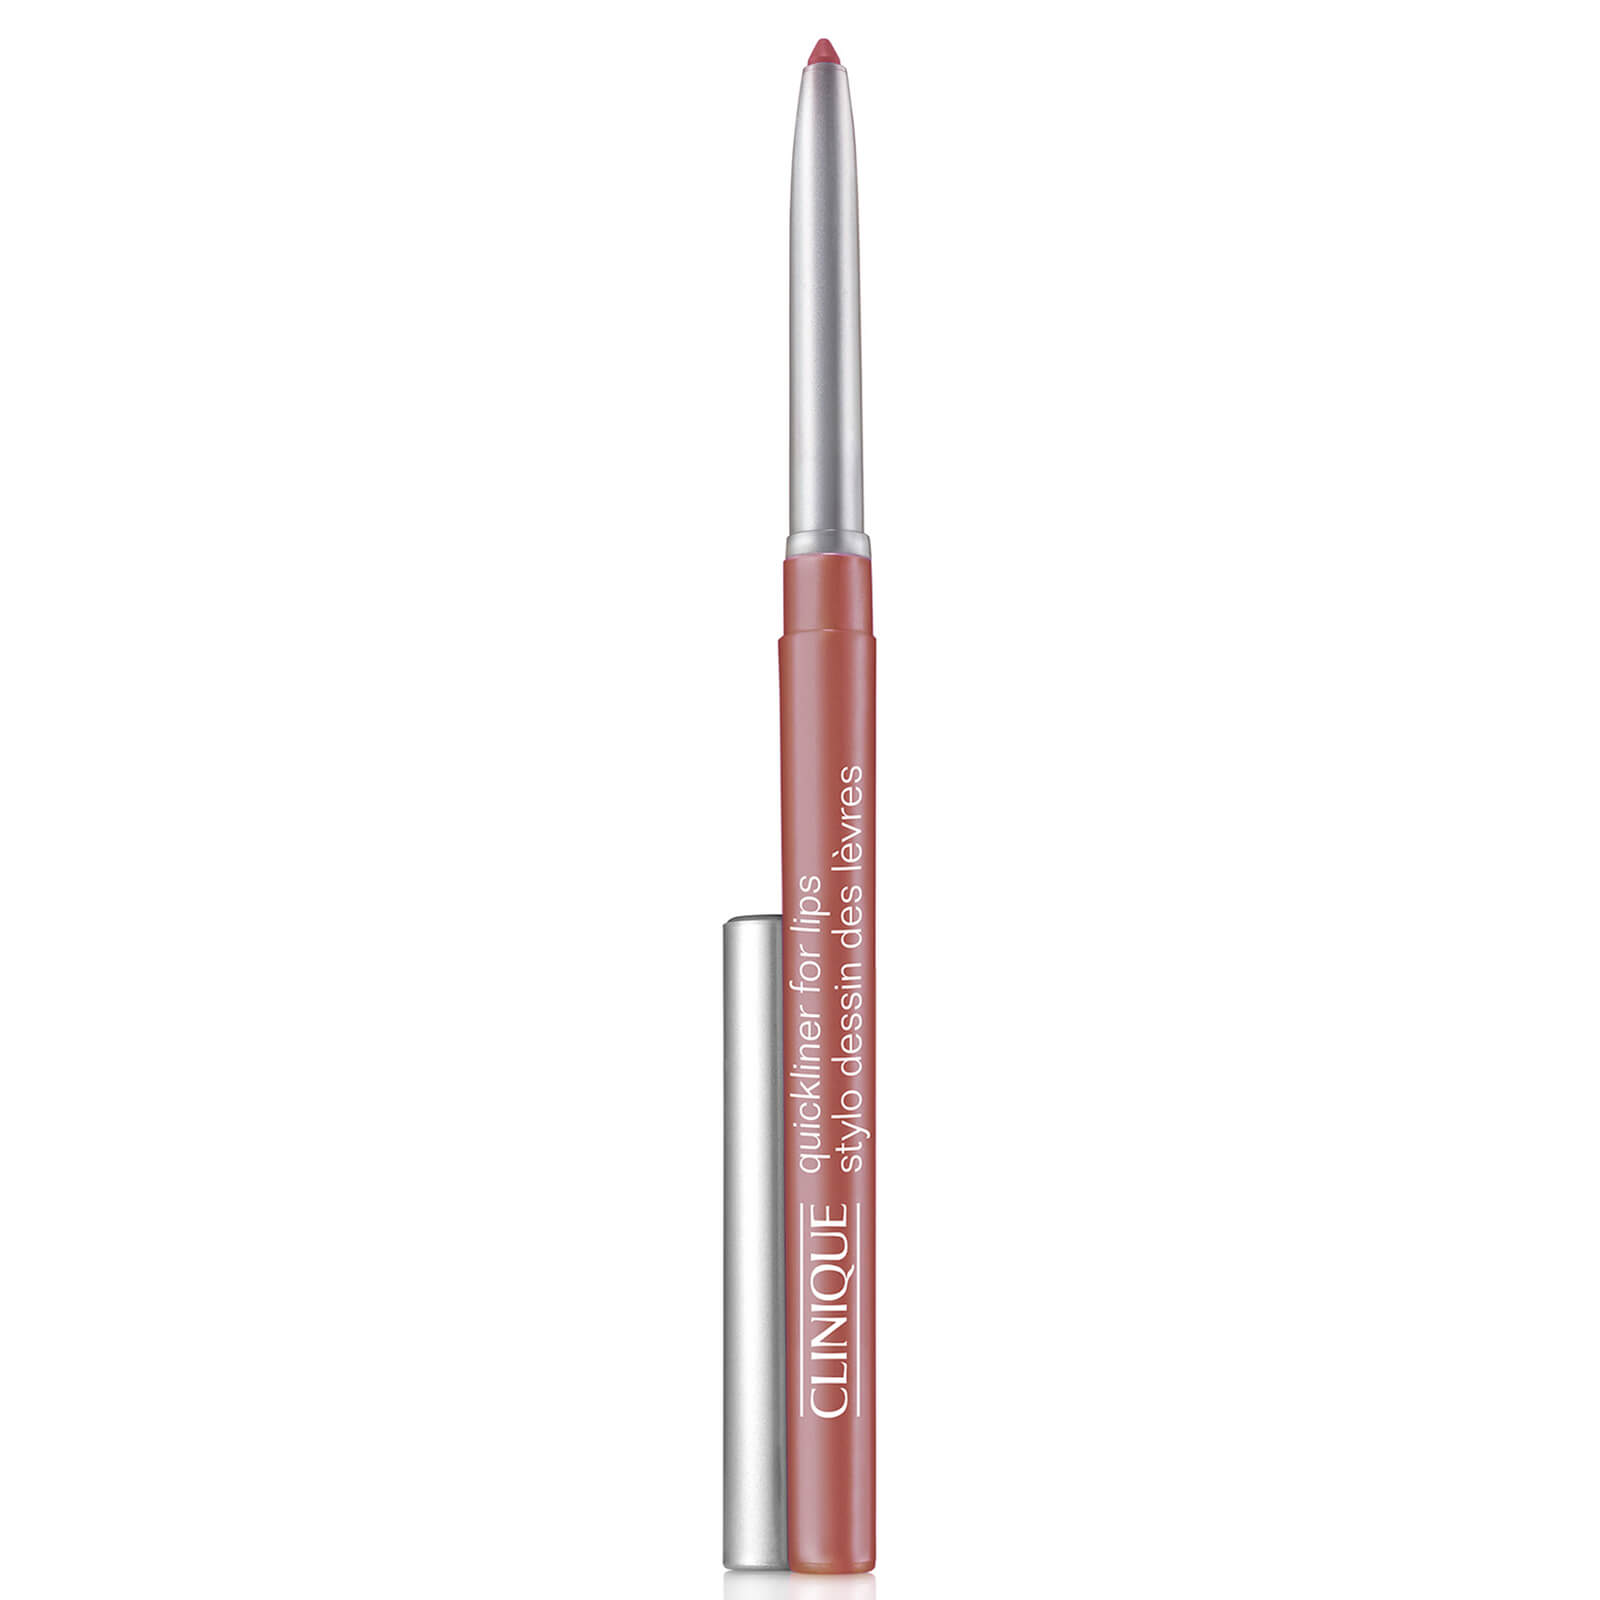 Clinique Quickliner for Lips 0.3g (Various Shades) - Berry Crisp